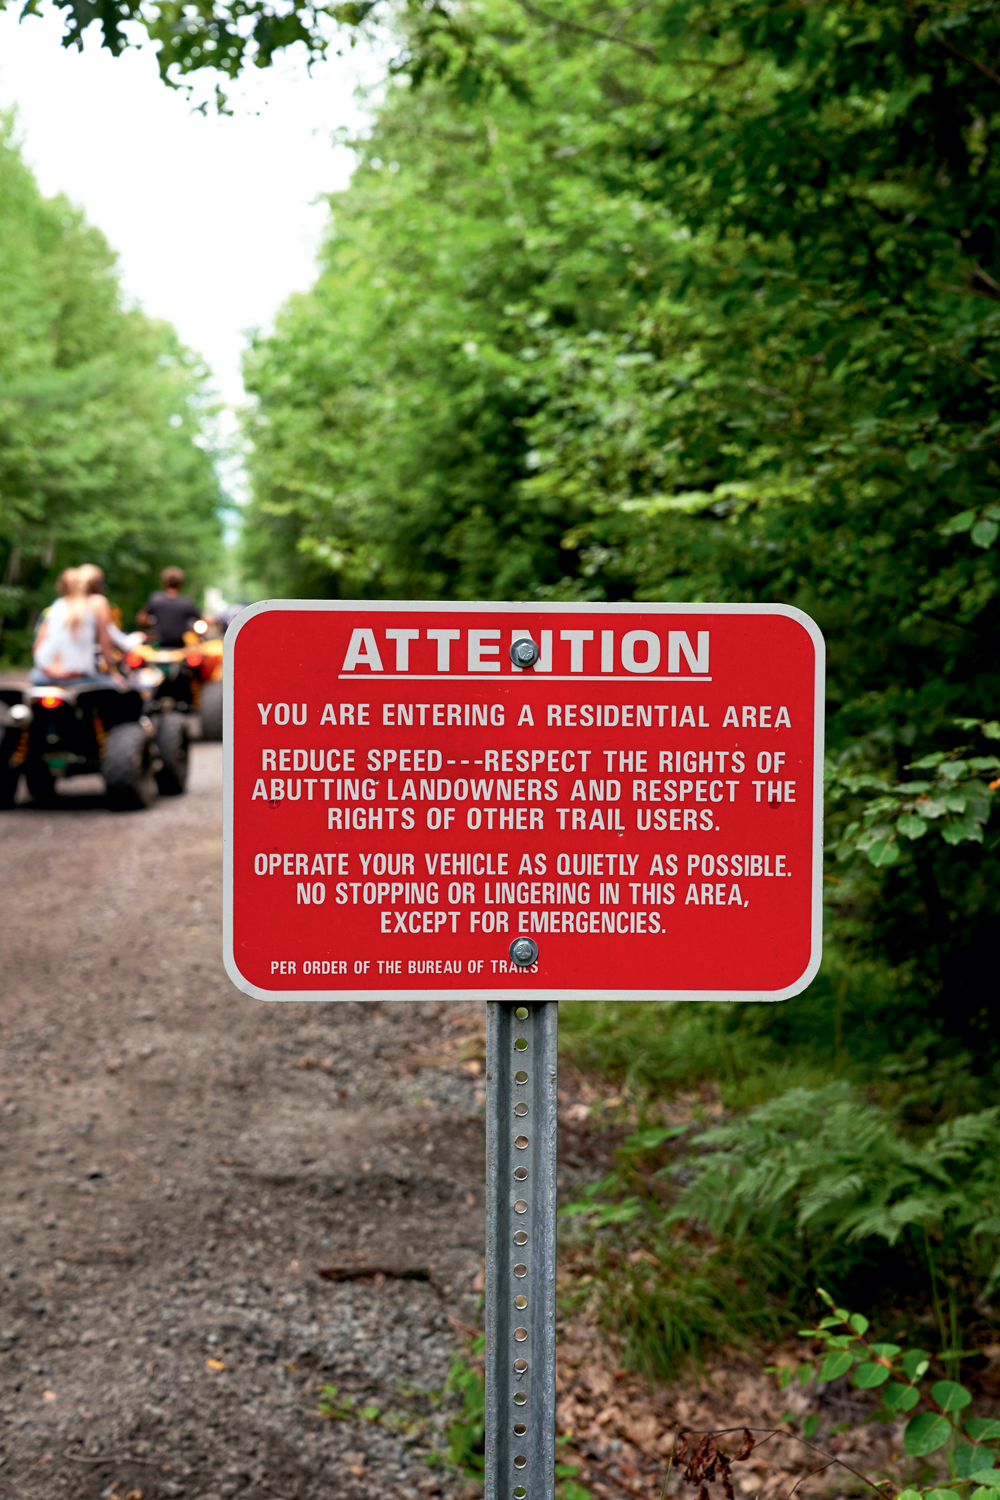 Northern Exposure | The ATV Tourism Industry in New Hampshire